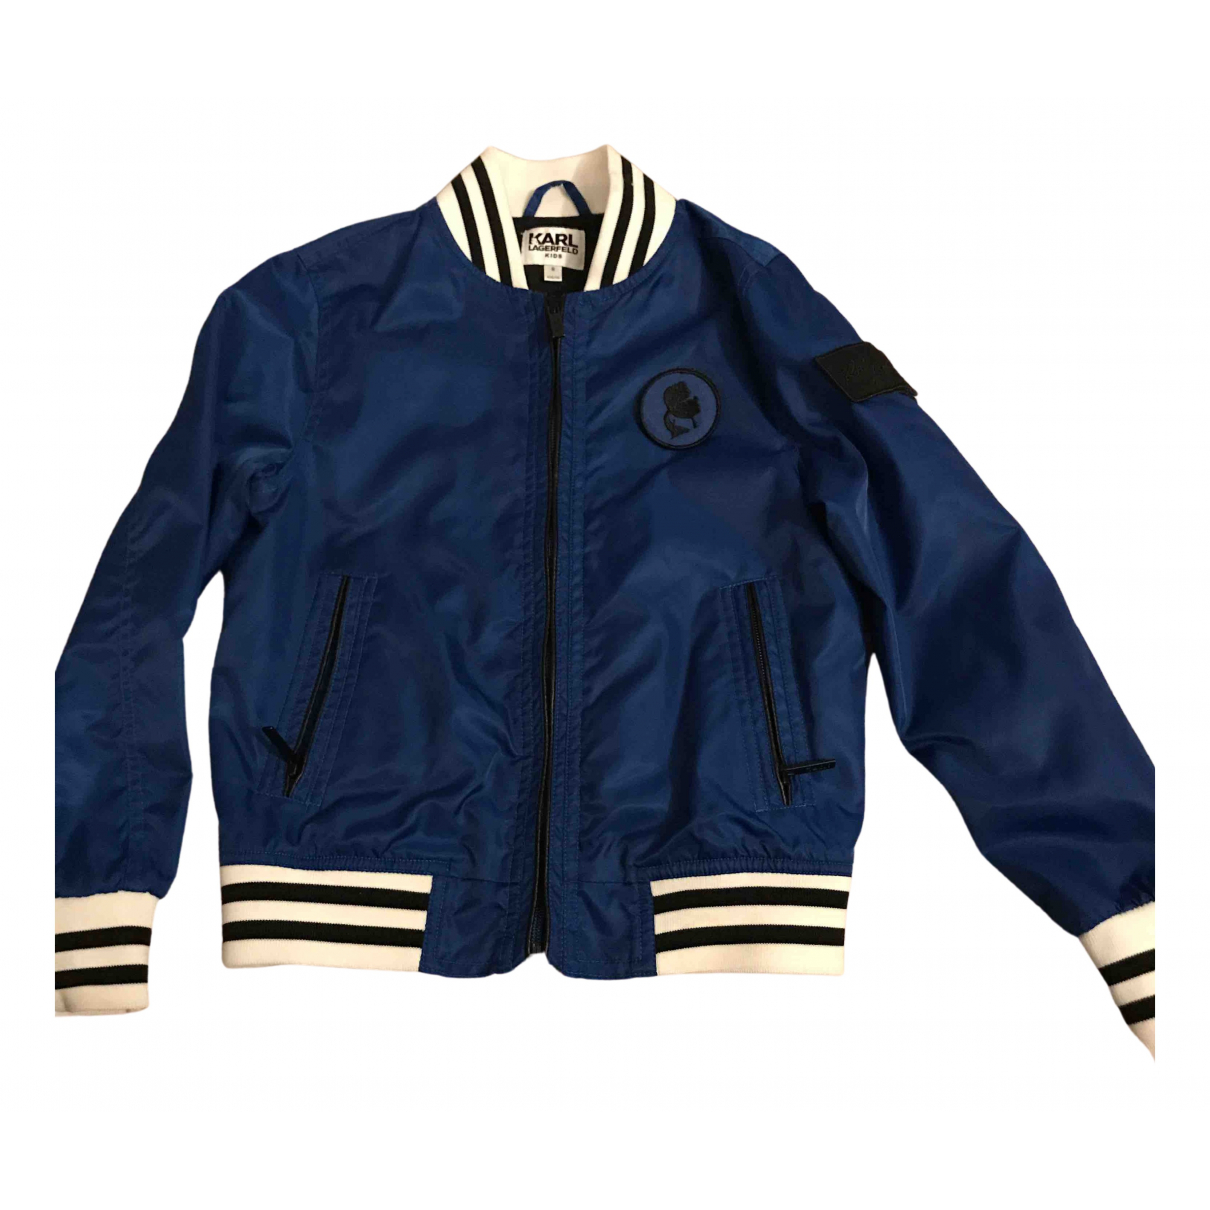 Karl Lagerfeld N Blue jacket & coat for Kids 8 years - until 50 inches UK